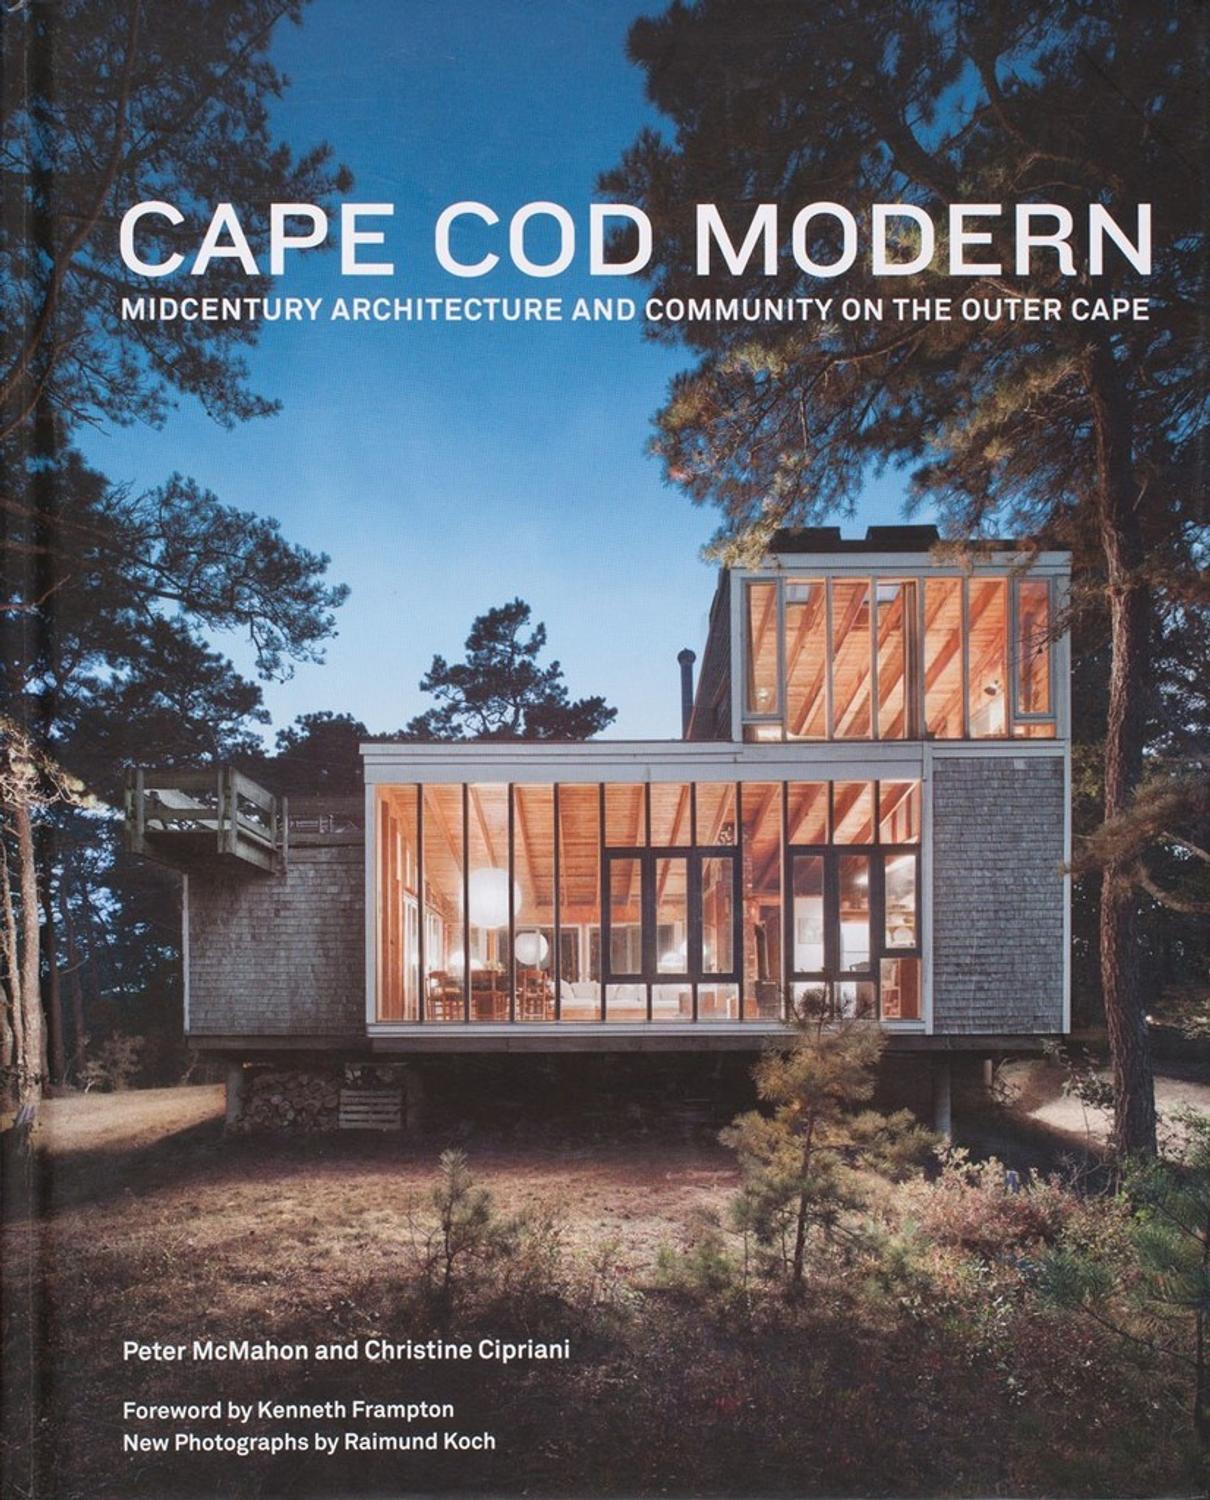 Historic New England Awards Annual Book Prize To Cape Cod